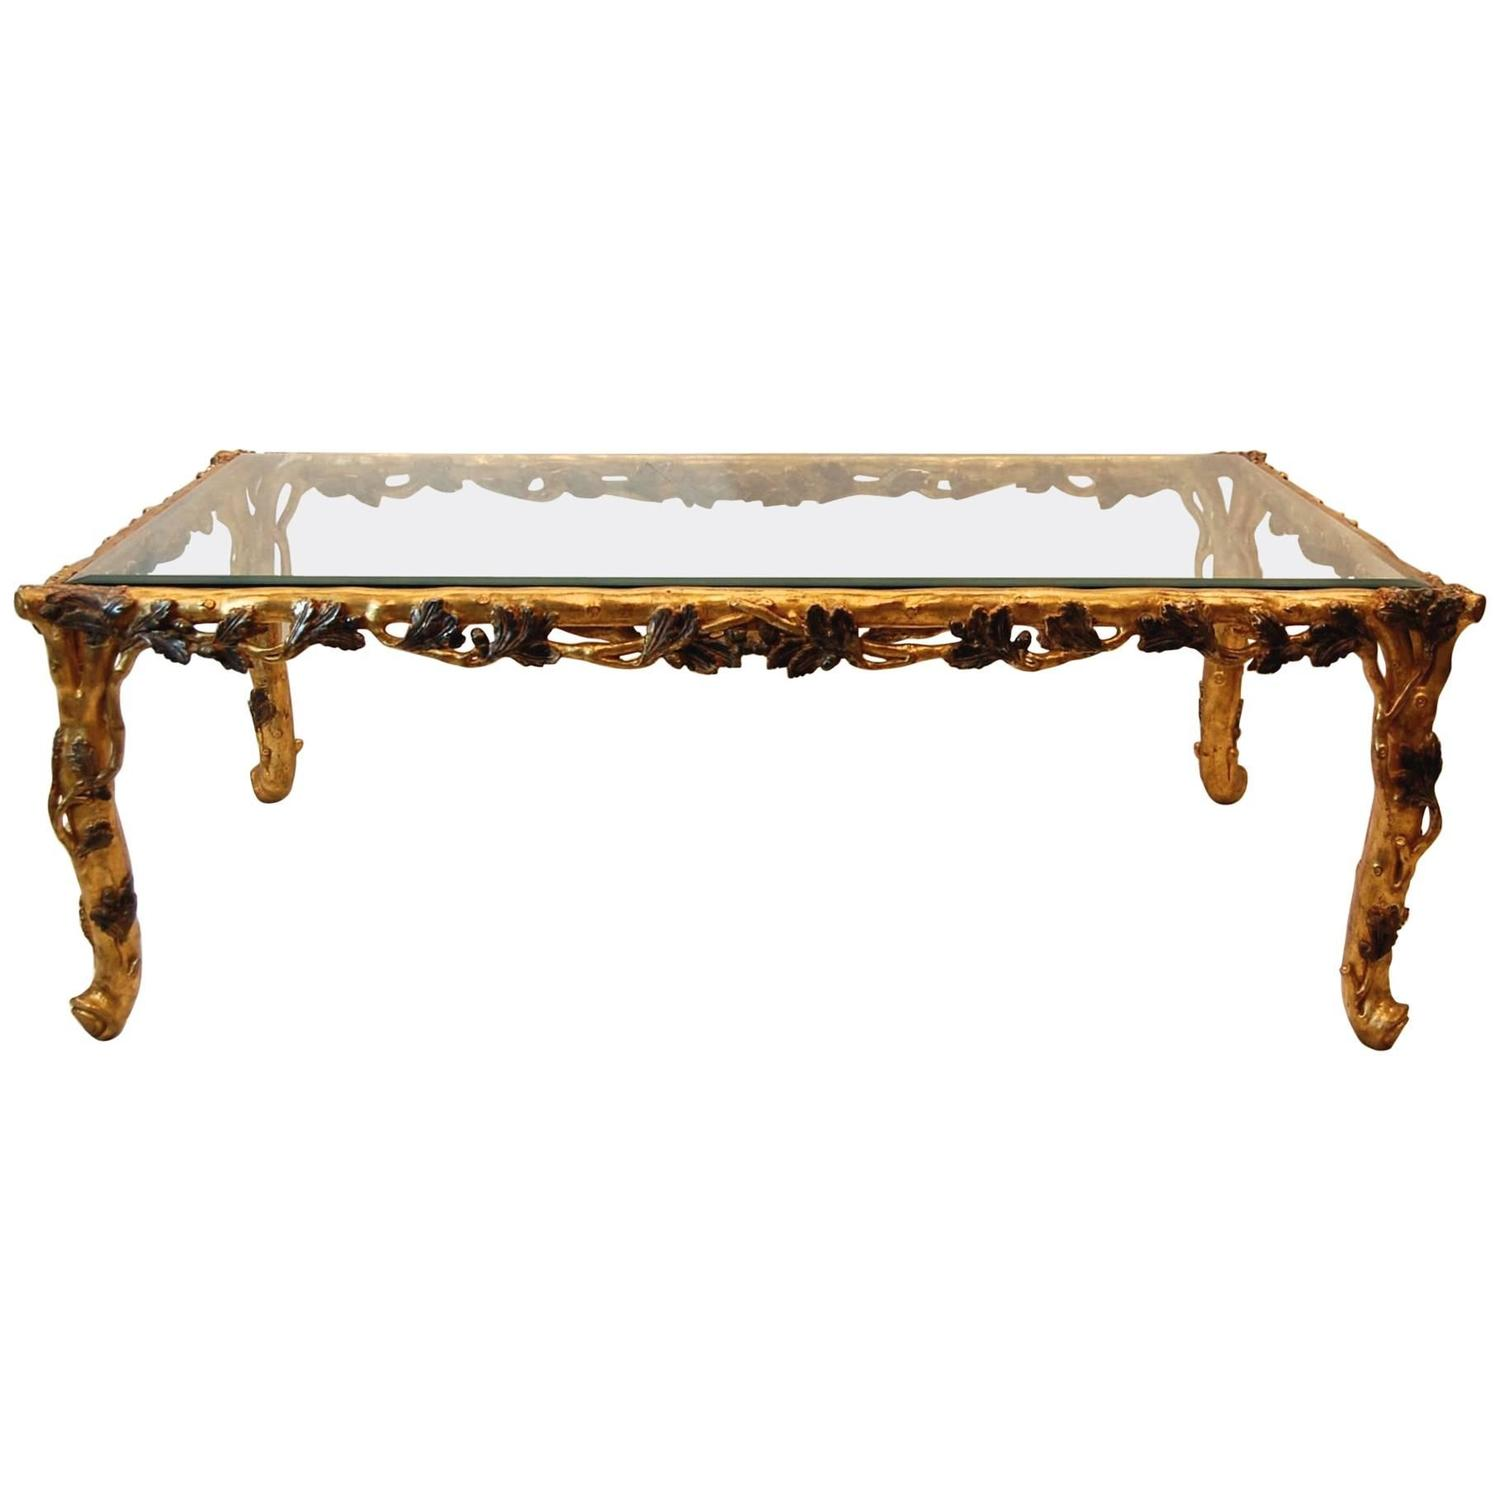 Merveilleux Italian Gold Leaf Carved Wood Rectangular Coffee Table With Bevelled Glass  Top